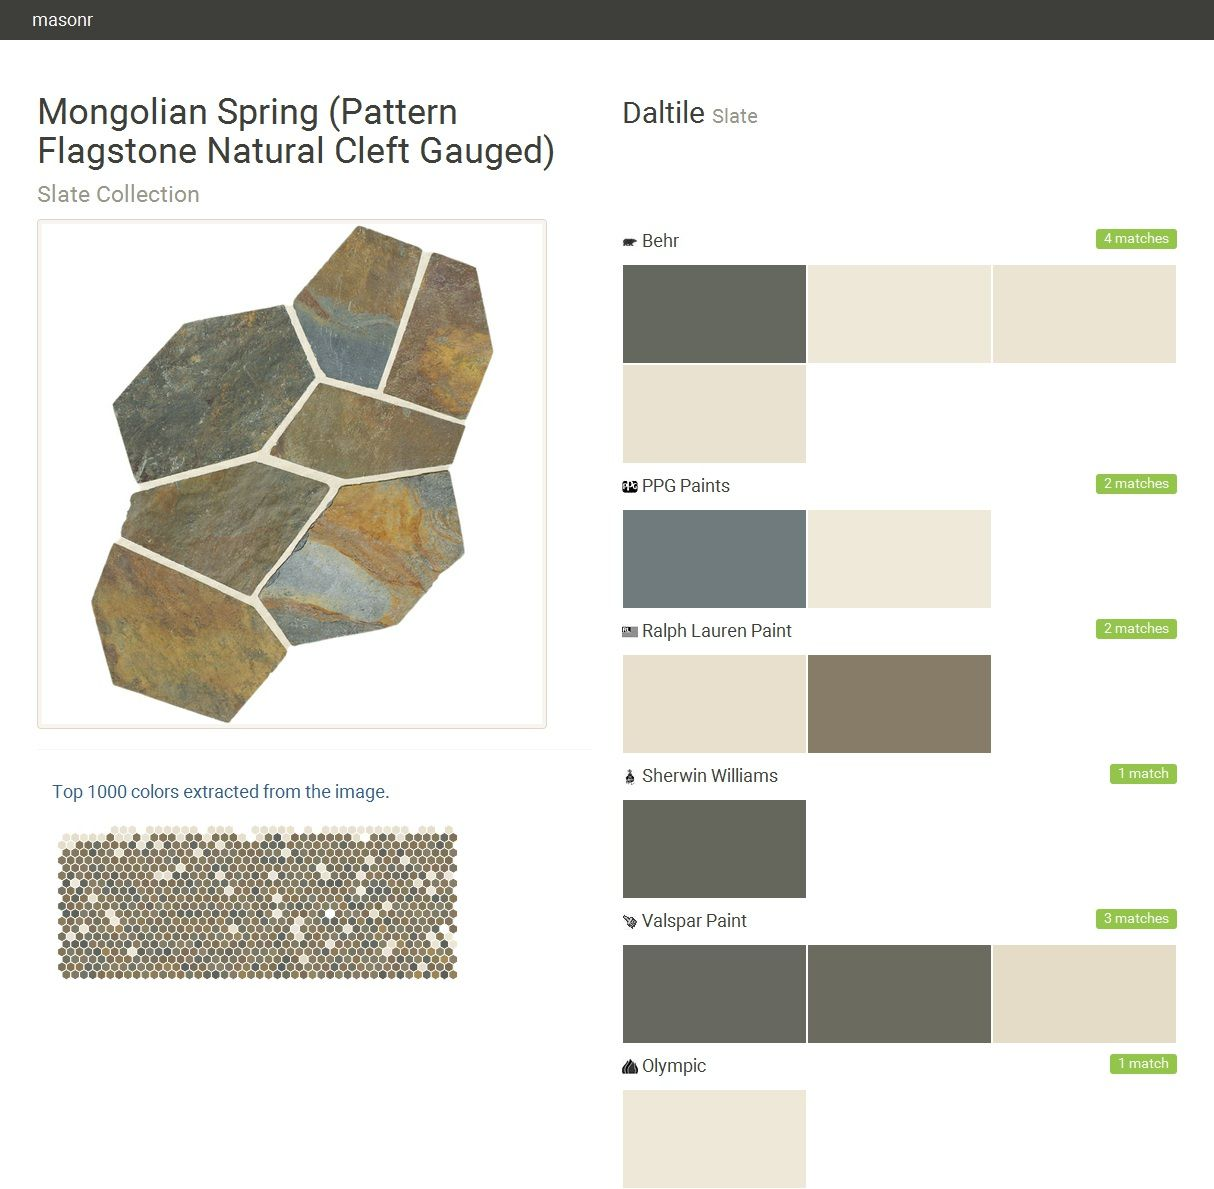 Mongolian Spring (Pattern Flagstone Natural Cleft Gauged). Slate Collection. Slate. Daltile. Behr. PPG Paints. Ralph Lauren Paint. Sherwin Williams. Valspar Paint. Olympic.  Click the gray Visit button to see the matching paint names.